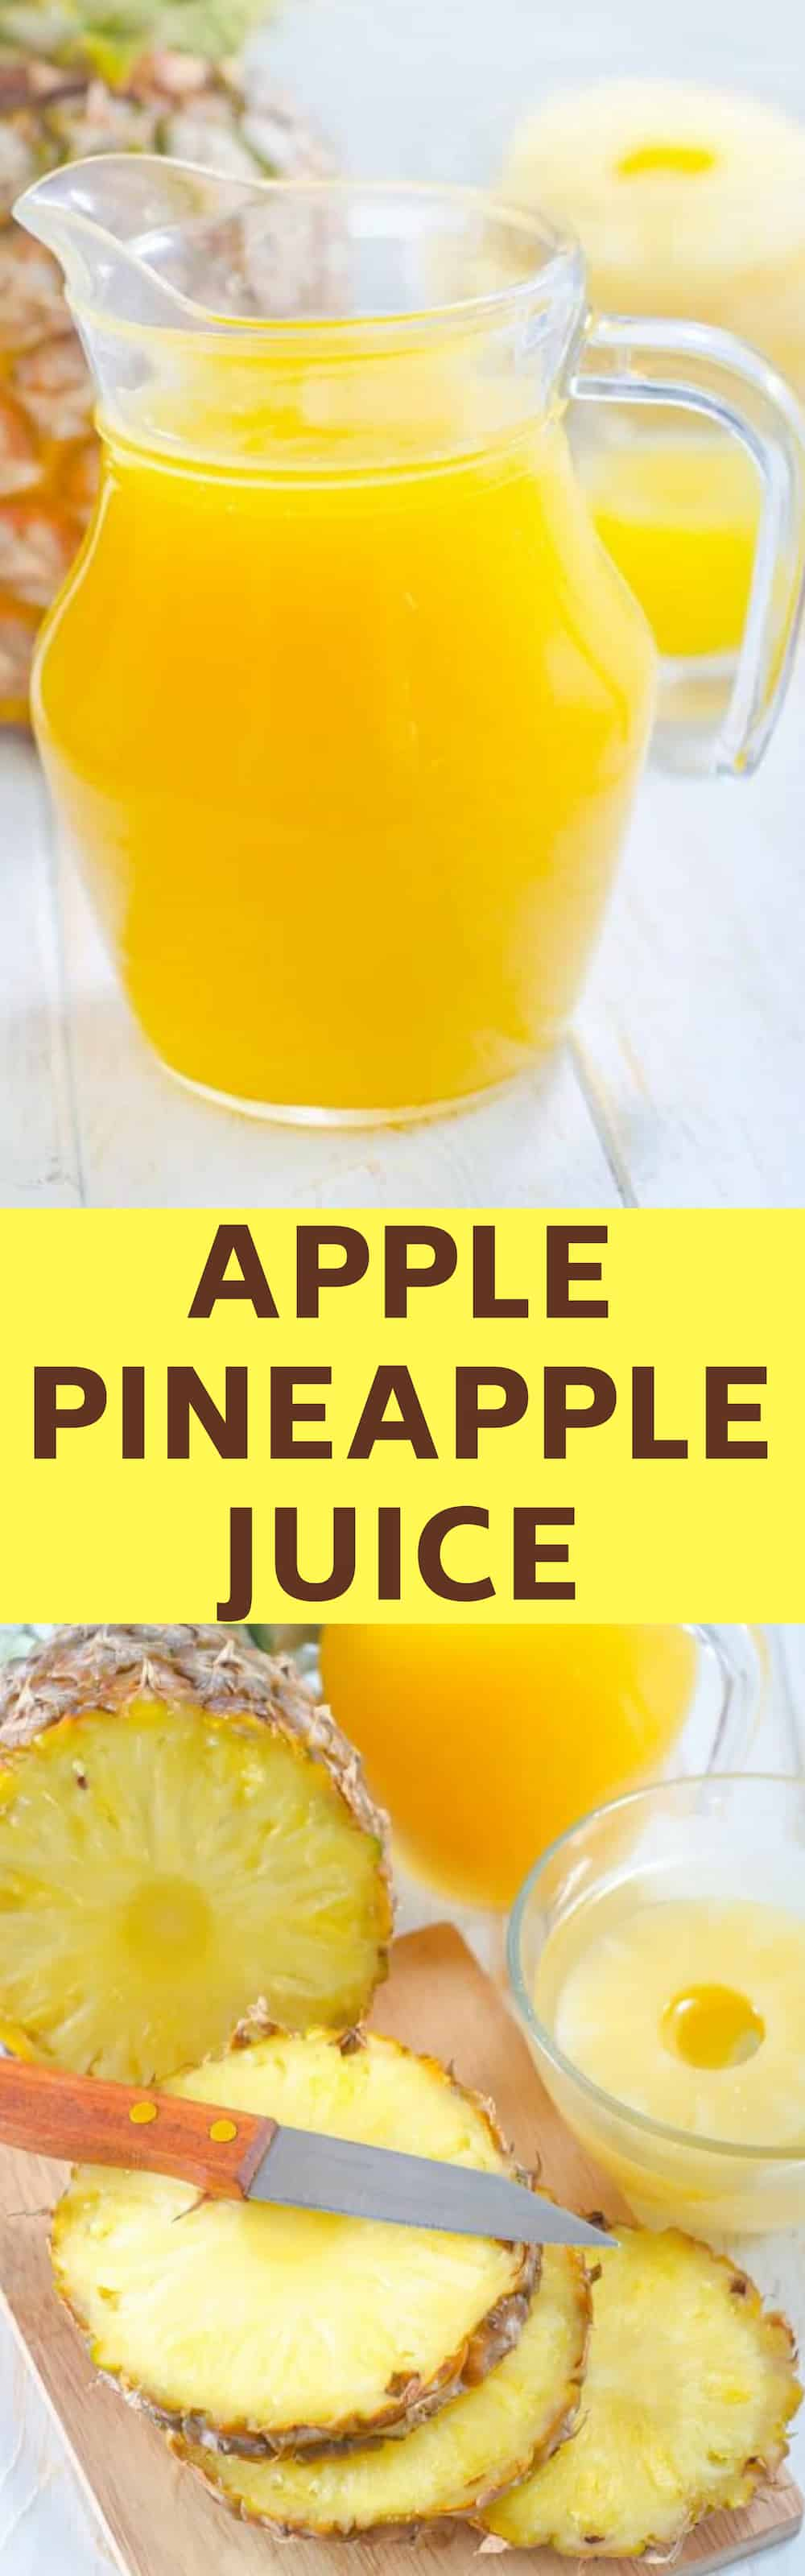 HEALTHY, 2-ingredient Apple Pineapple Juice! This fresh homemade juice is made with just one Fuji apple and one pineapple! It's perfectly balanced between sweet and tart and it has so many health benefits, including detox and weight loss!